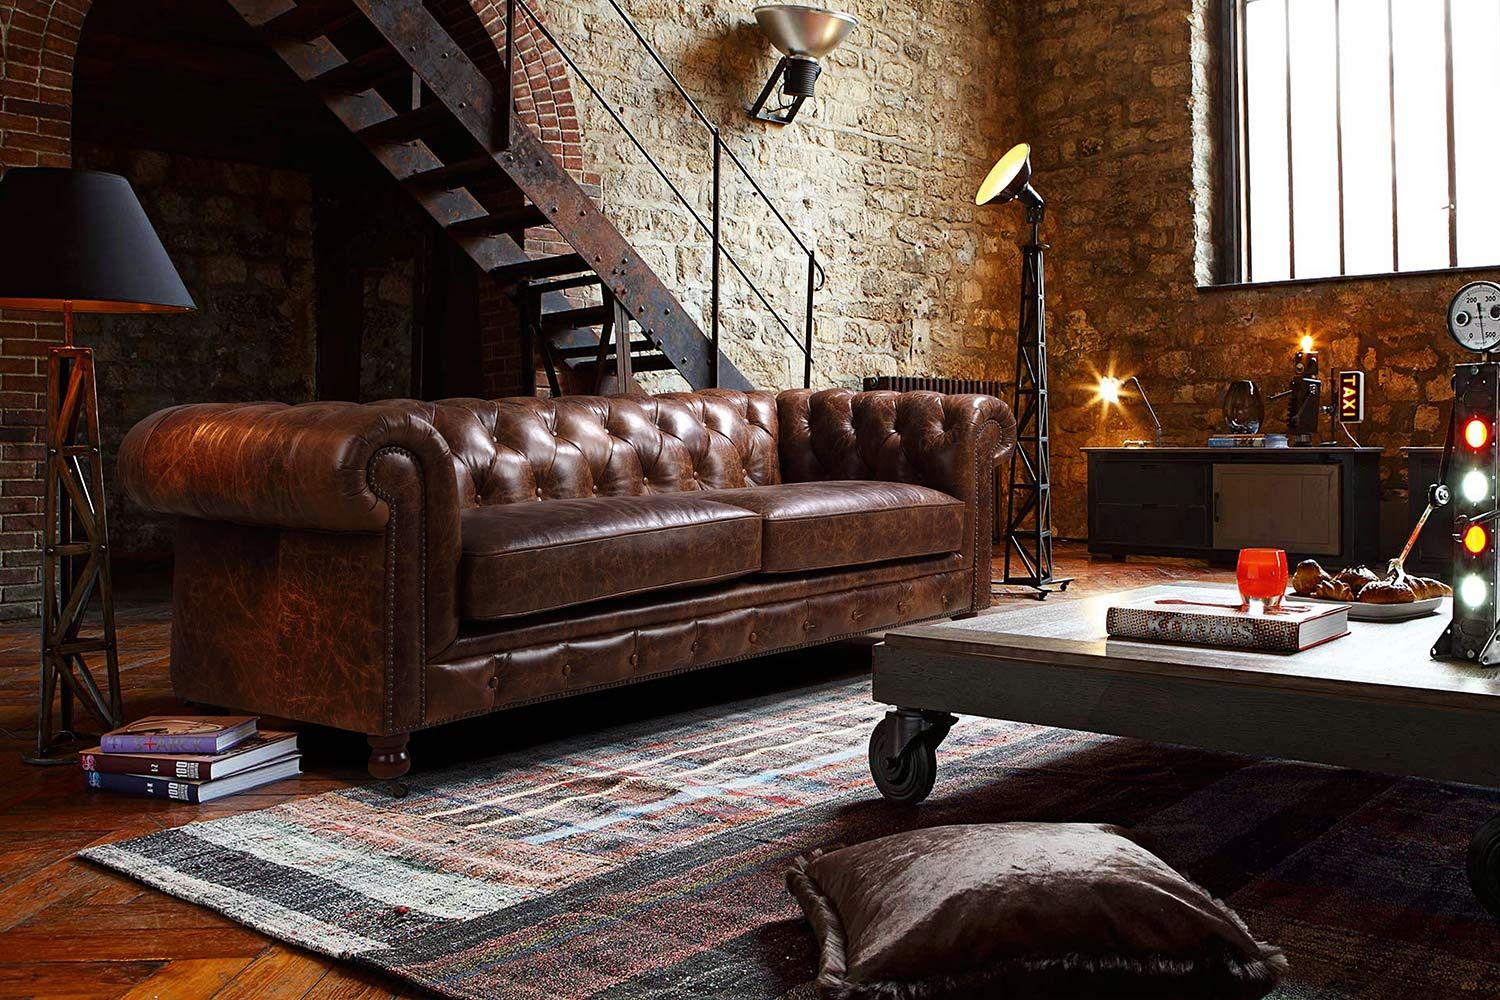 Deco Salon Chesterfield Kensington Chesterfield Leather Sofa By Rose And Moore In An